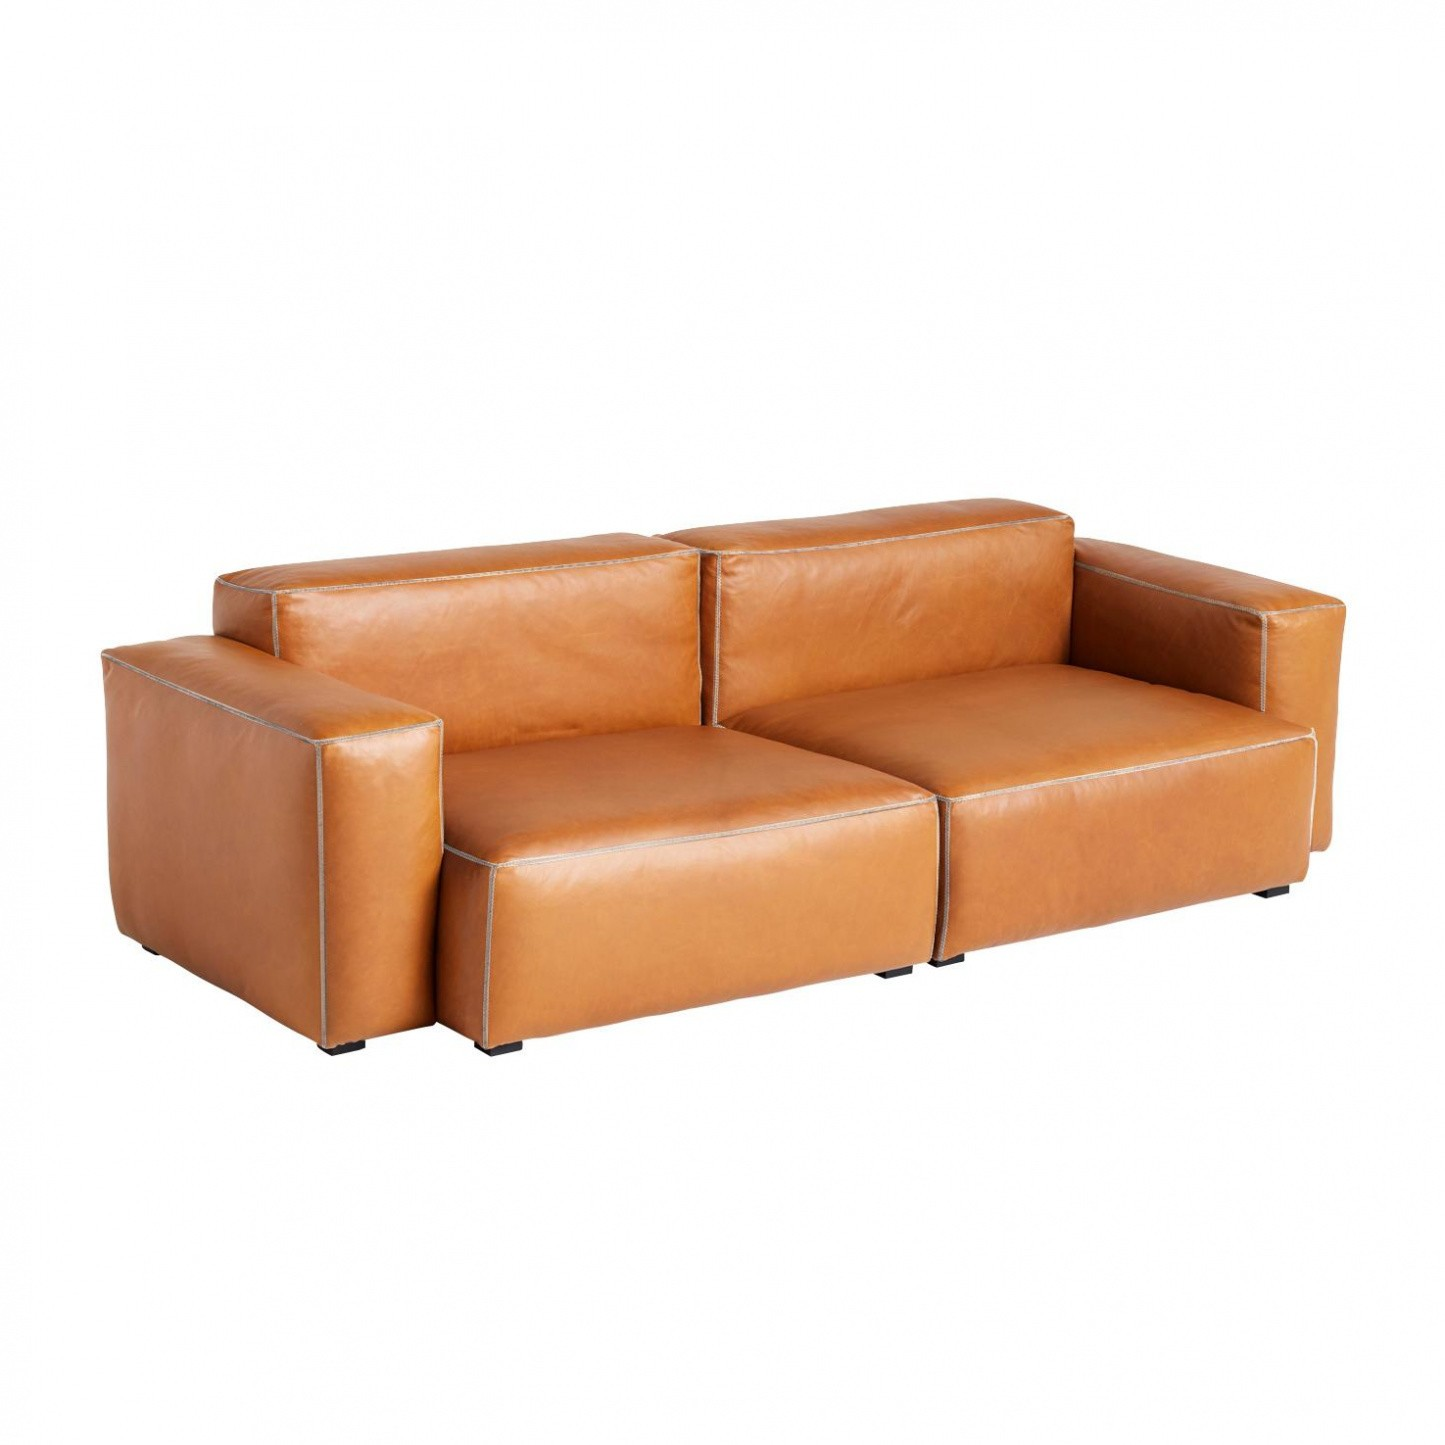 Hay Mags Soft 2 5 Seater Sofa Low Armrest Leather Ambientedirect